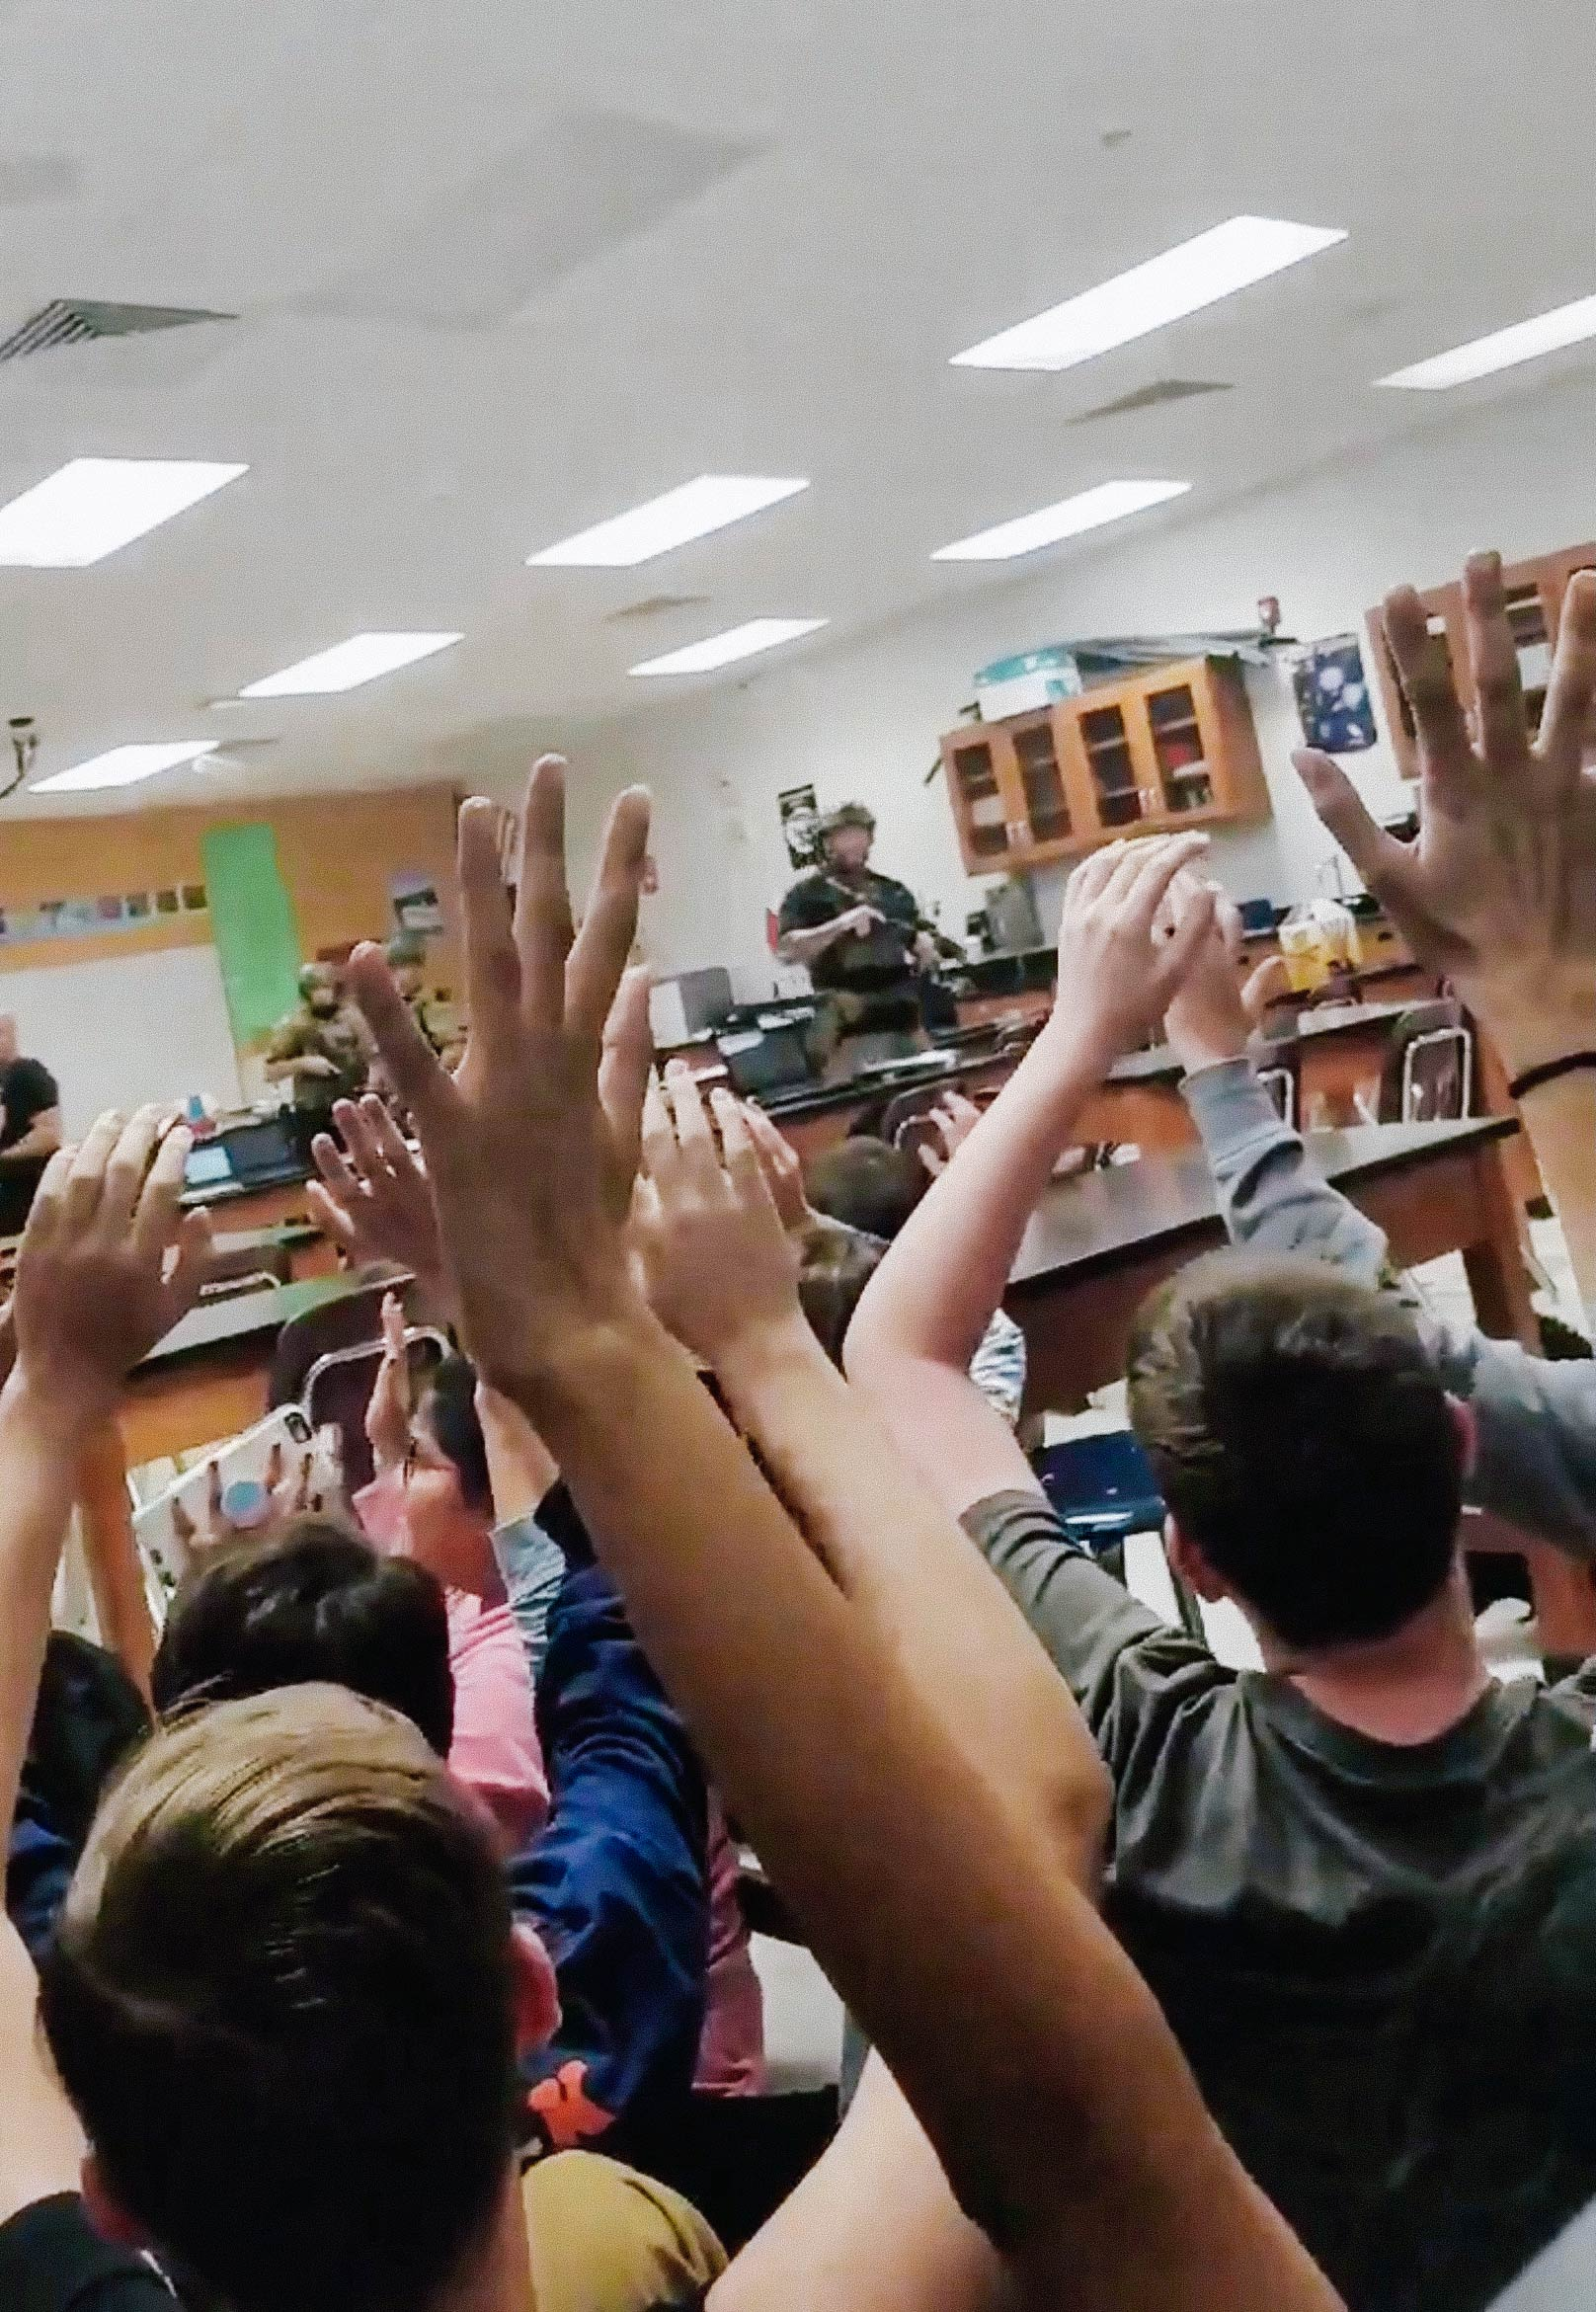 Students put their hands up in the air as armed police enter their classroom, following a shooting at the Marjory Stoneman Douglas High School in Parkland, Florida, in this screengrab taken from a Feb. 14 social media video.